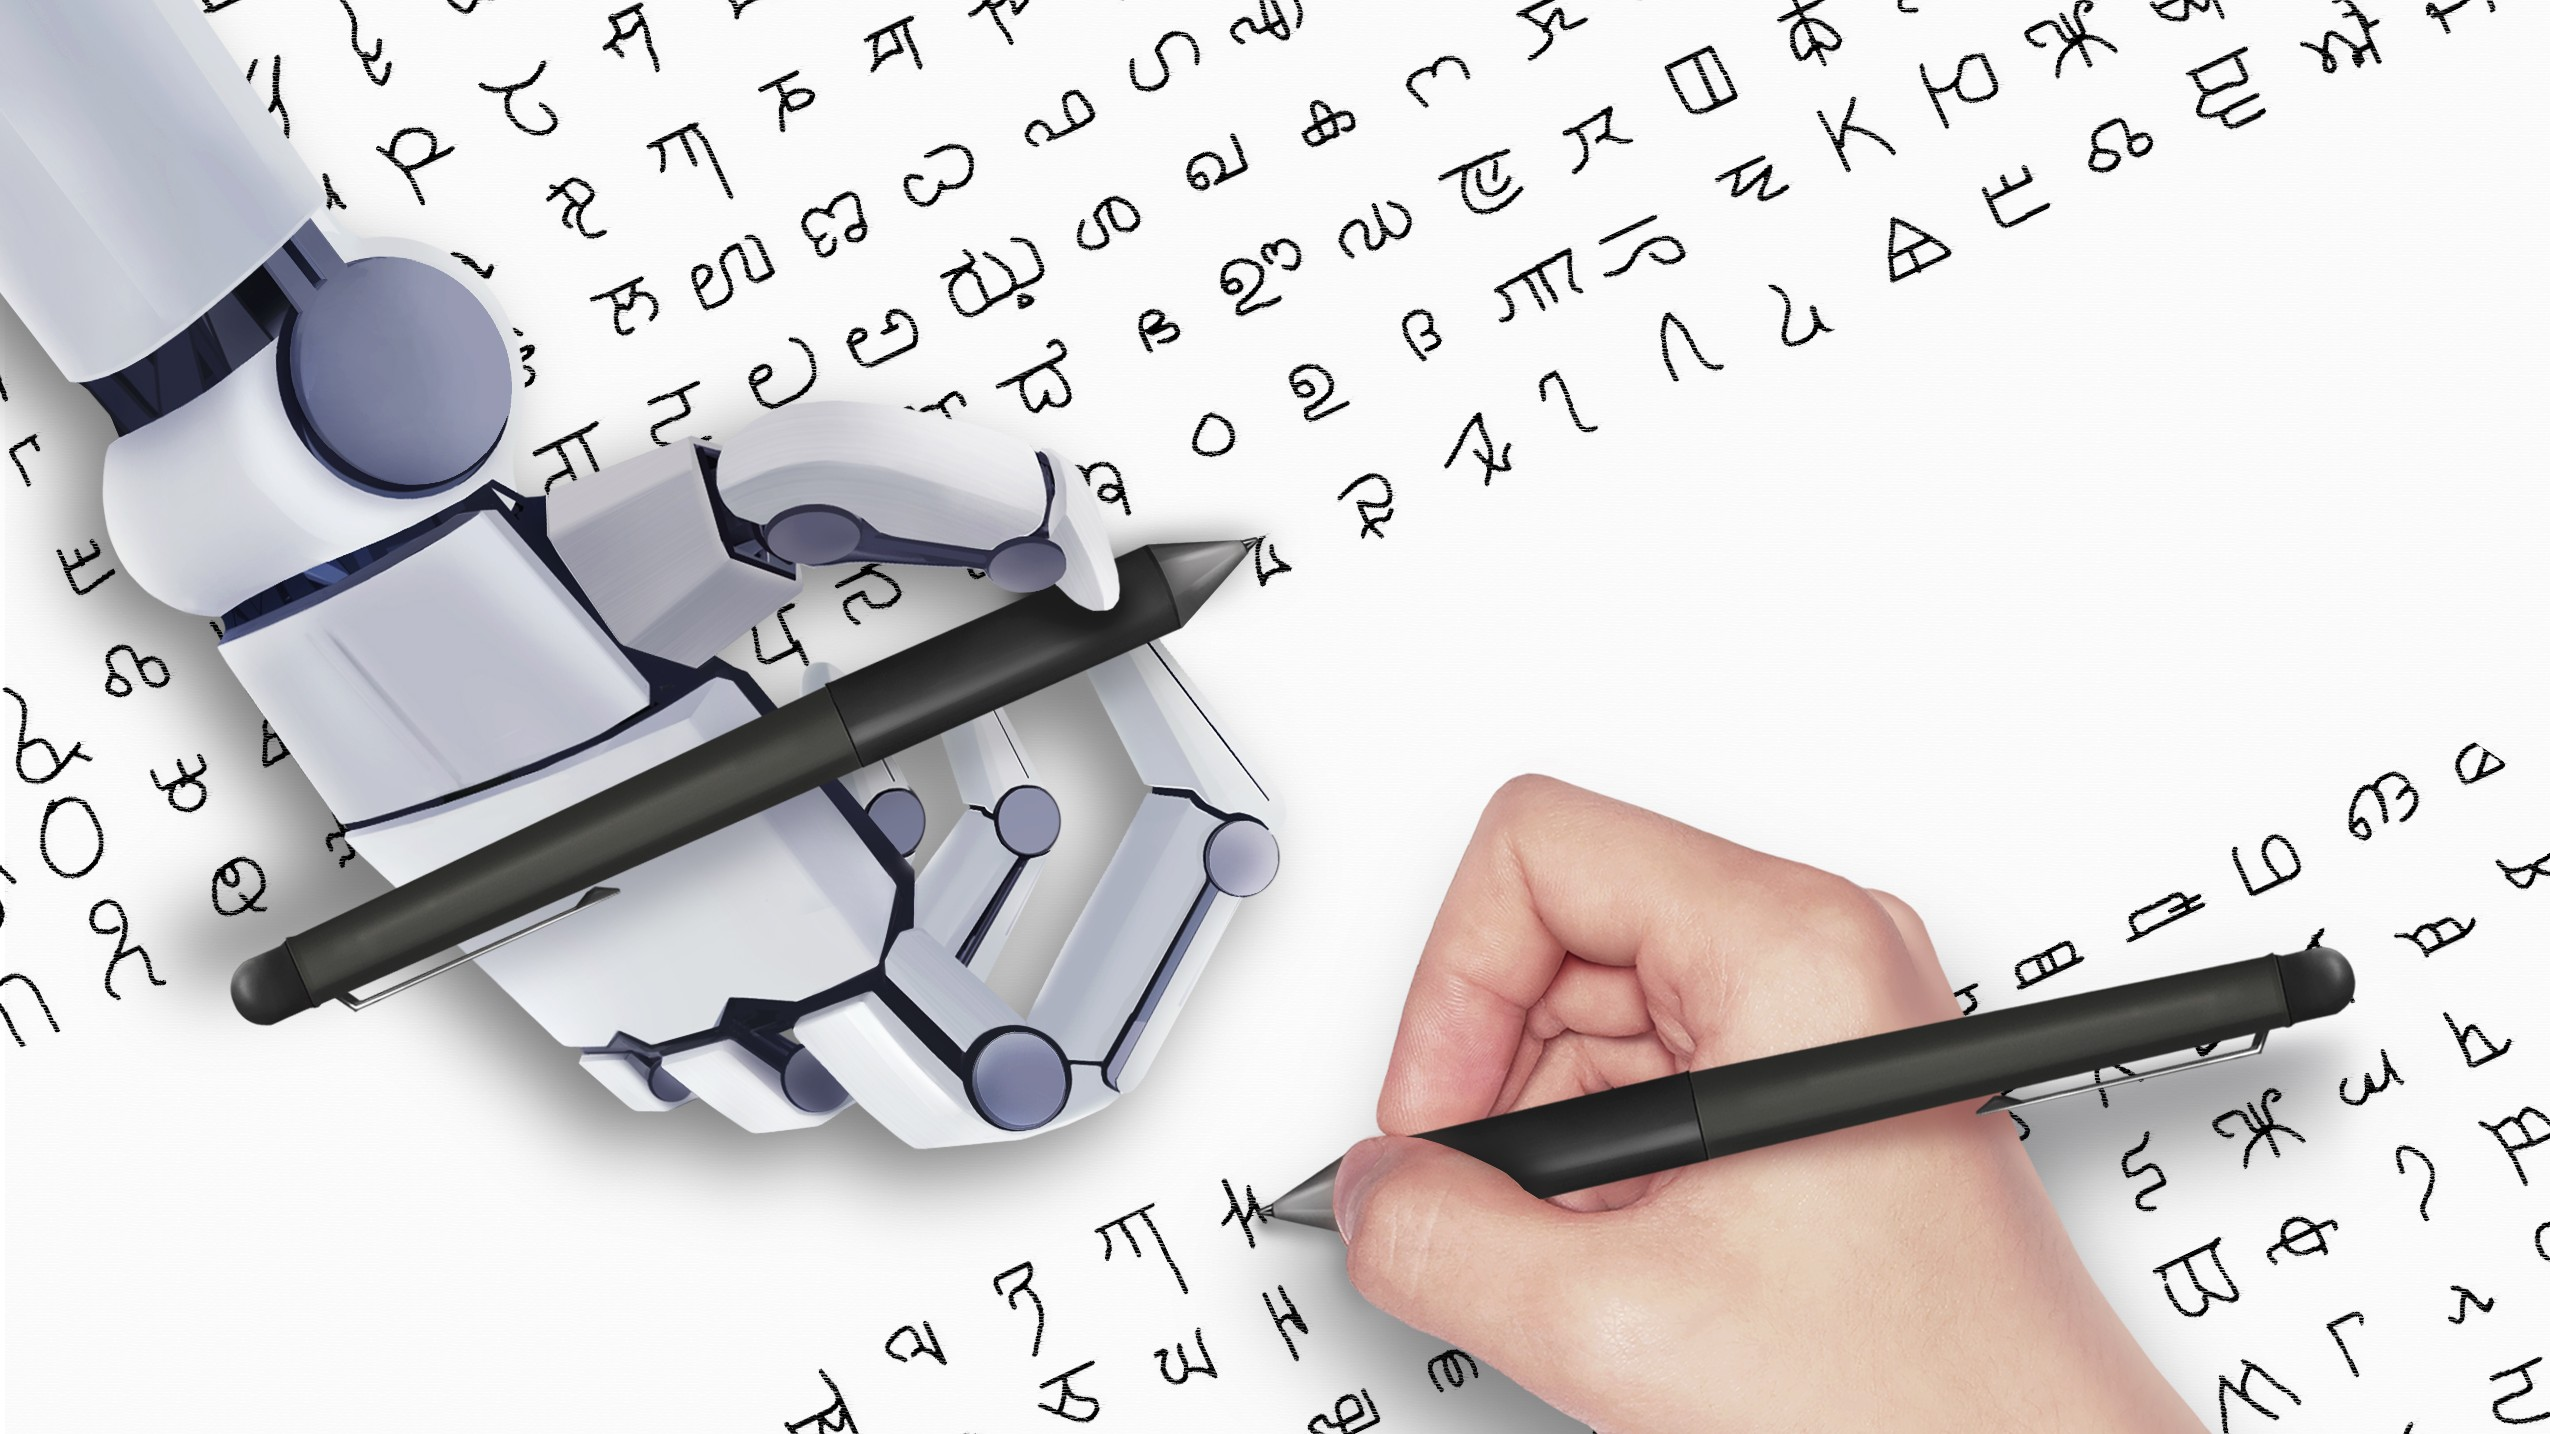 This Handwriting Algorithm Could Help Robots Understand Causality